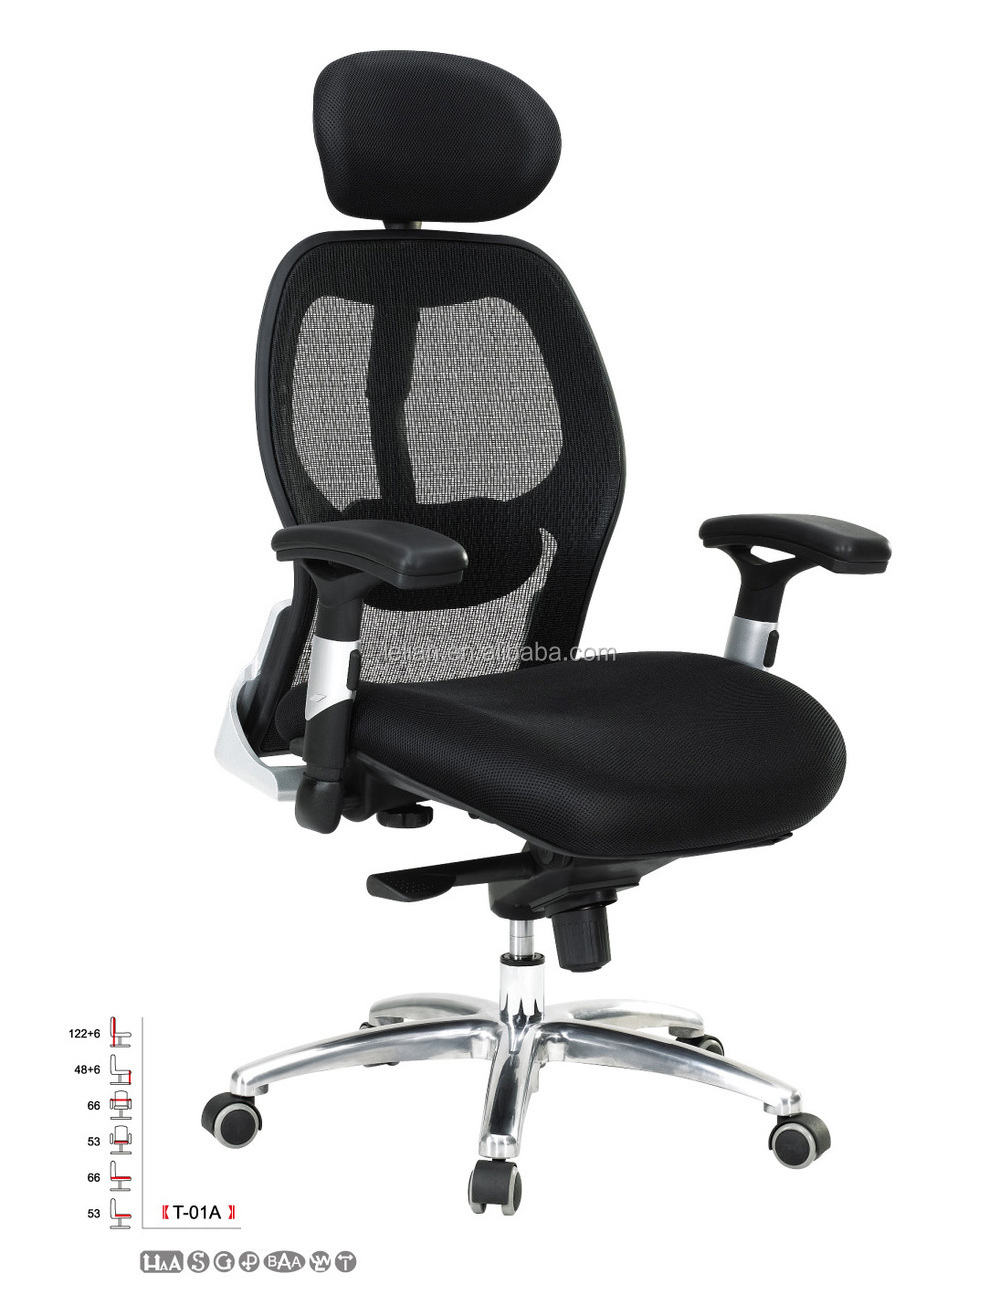 classic office chairs.  Office Classic Office Chairs T01b Furniture Guangdong Chair Mesh  Chairs Throughout Classic Office Chairs